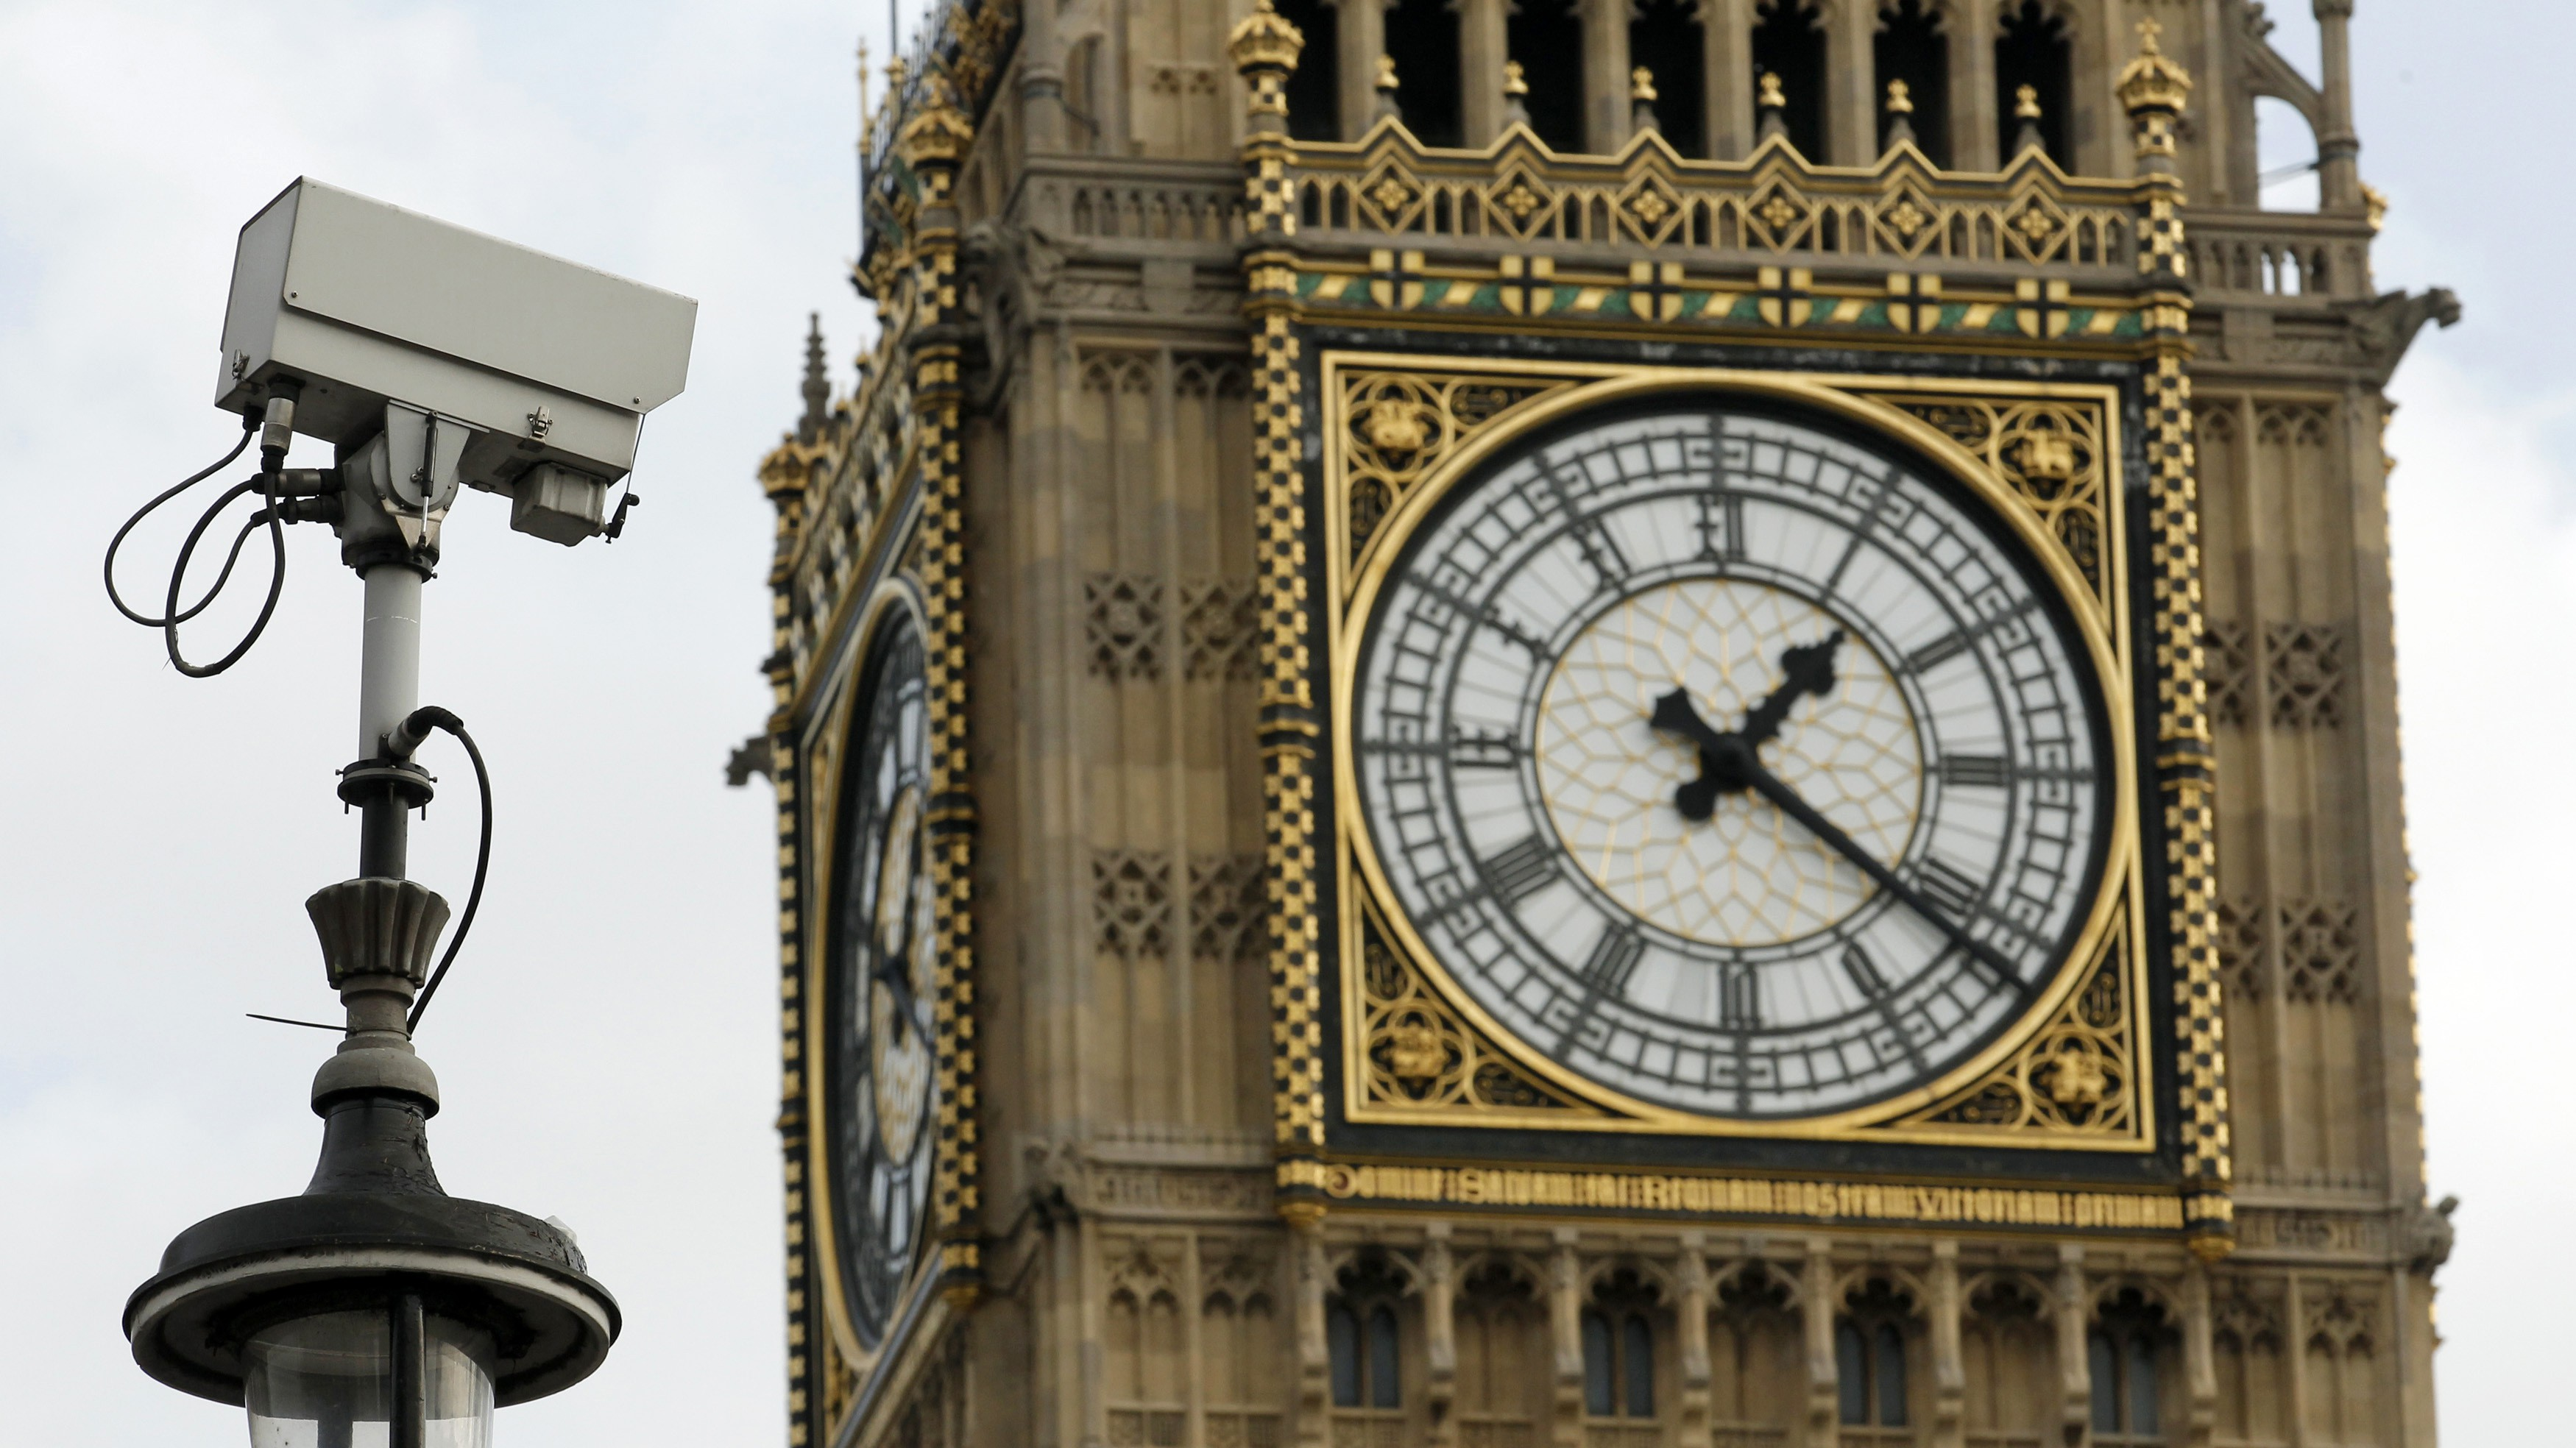 A surveillance camera points towards Parliament Square, in front of the Big Ben Clock Tower in London October 18, 2010. Terrorism and cyber attacks will be identified on Monday as the main threats to Britain in a new security strategy, a plan likely to be used to justify cuts to major hardware orders in a sweeping military review a day later. REUTERS/Luke MacGregor  (BRITAINPOLITICS MILITARY - Tags: MILITARY POLITICS CRIME LAW) - RTXTK55